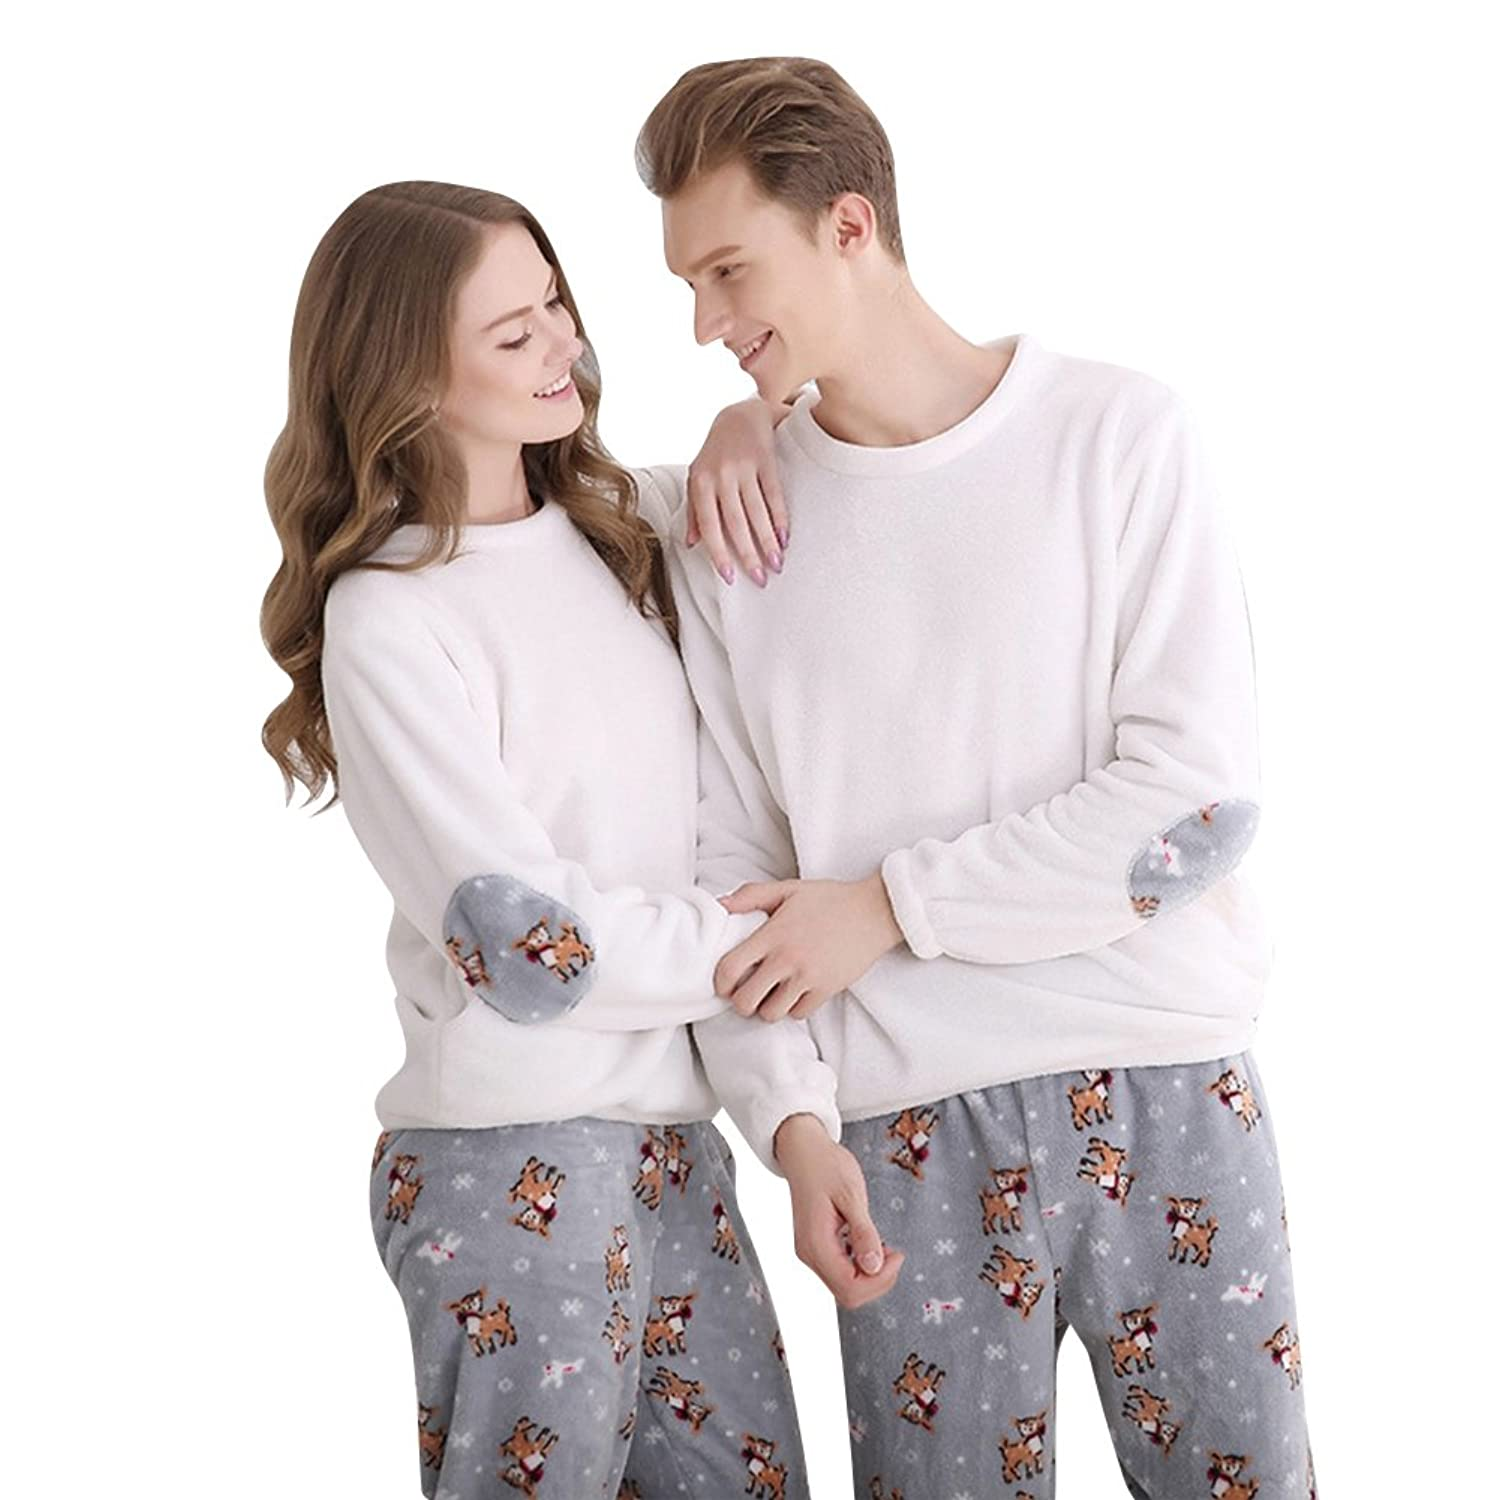 Morver Winter Flannel Thermal Matching Couples Women Men Pajamas Set